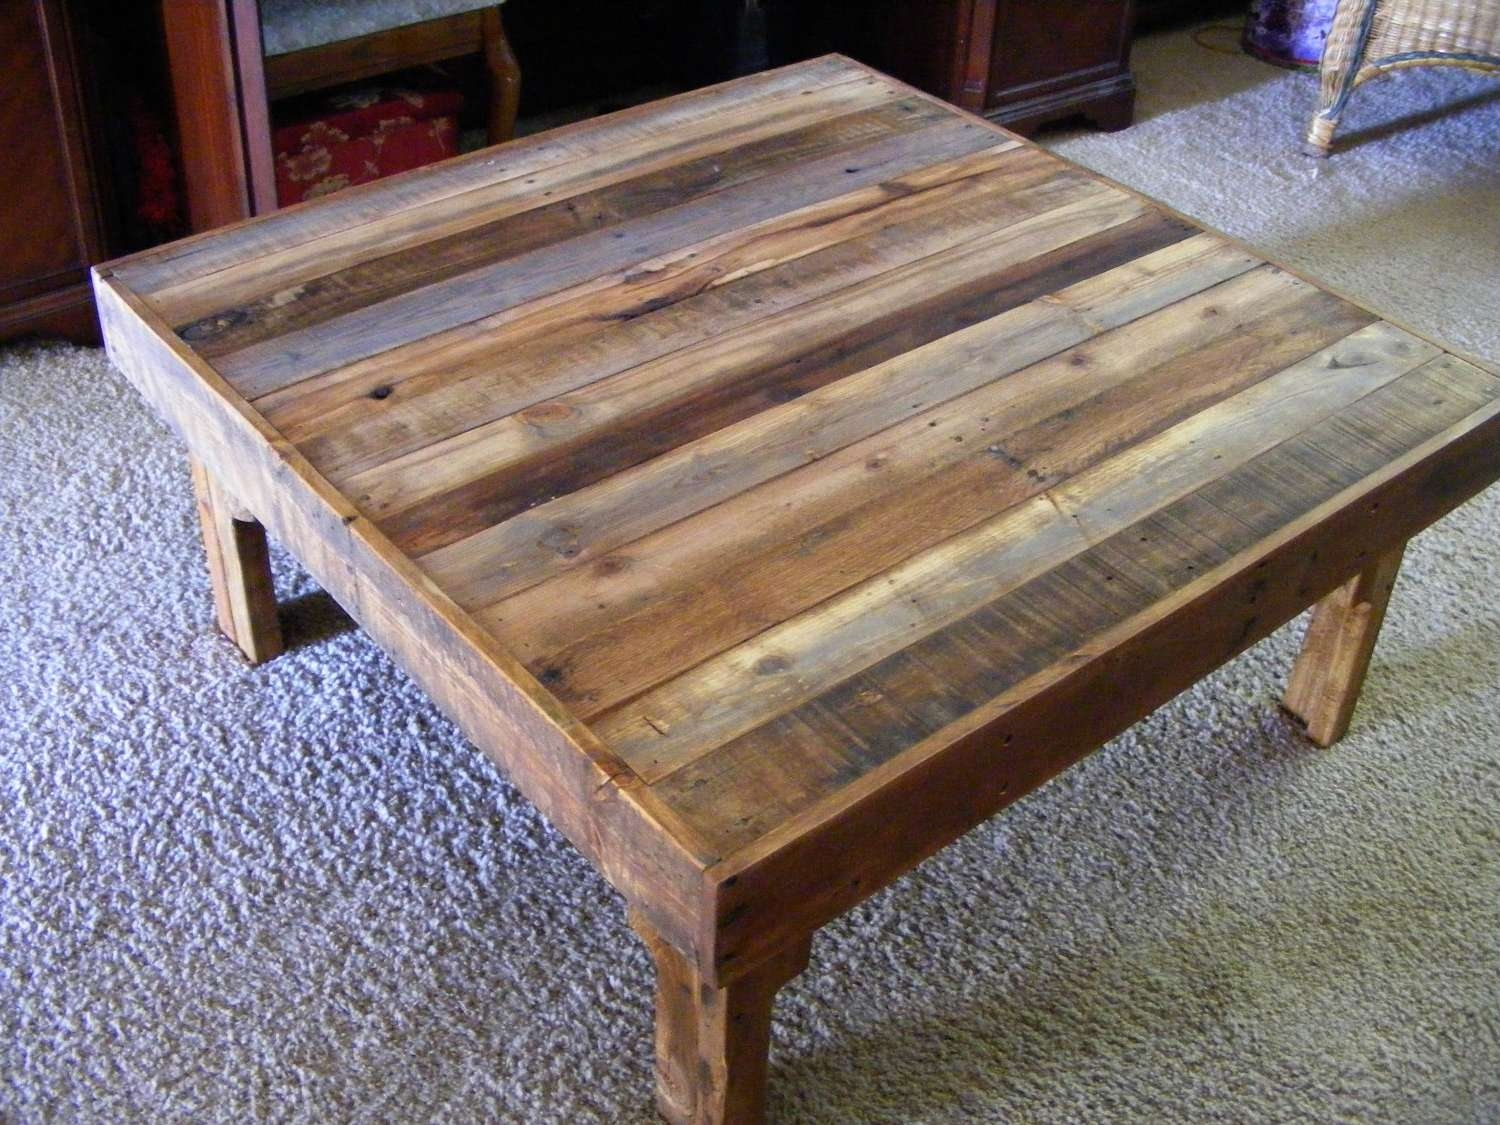 Coffee Tables : Rummy Large Square Coffee Table Wood Reclaimed U With Regard To Most Popular Large Square Wood Coffee Tables (View 10 of 20)